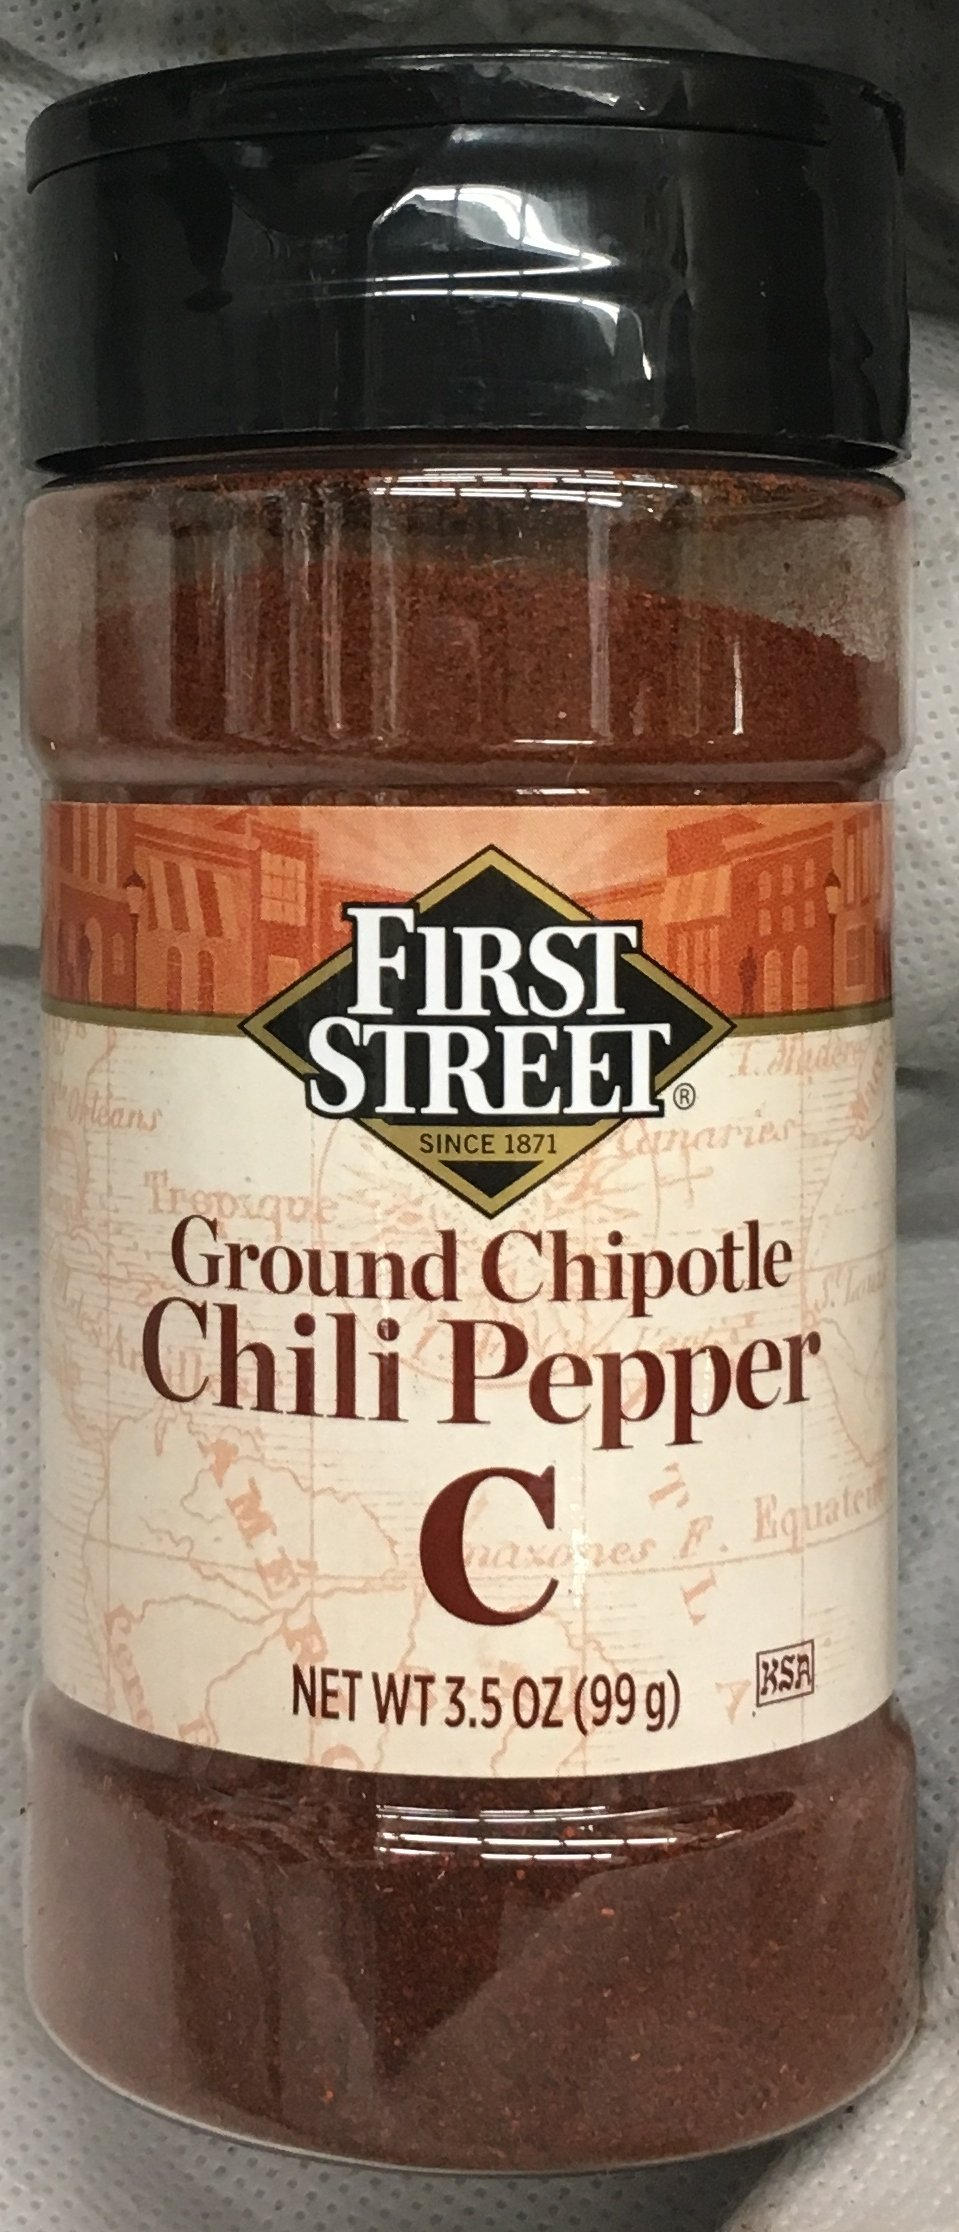 3.5oz First Street Ground Chipotle Chili Pepper, Pack of 1